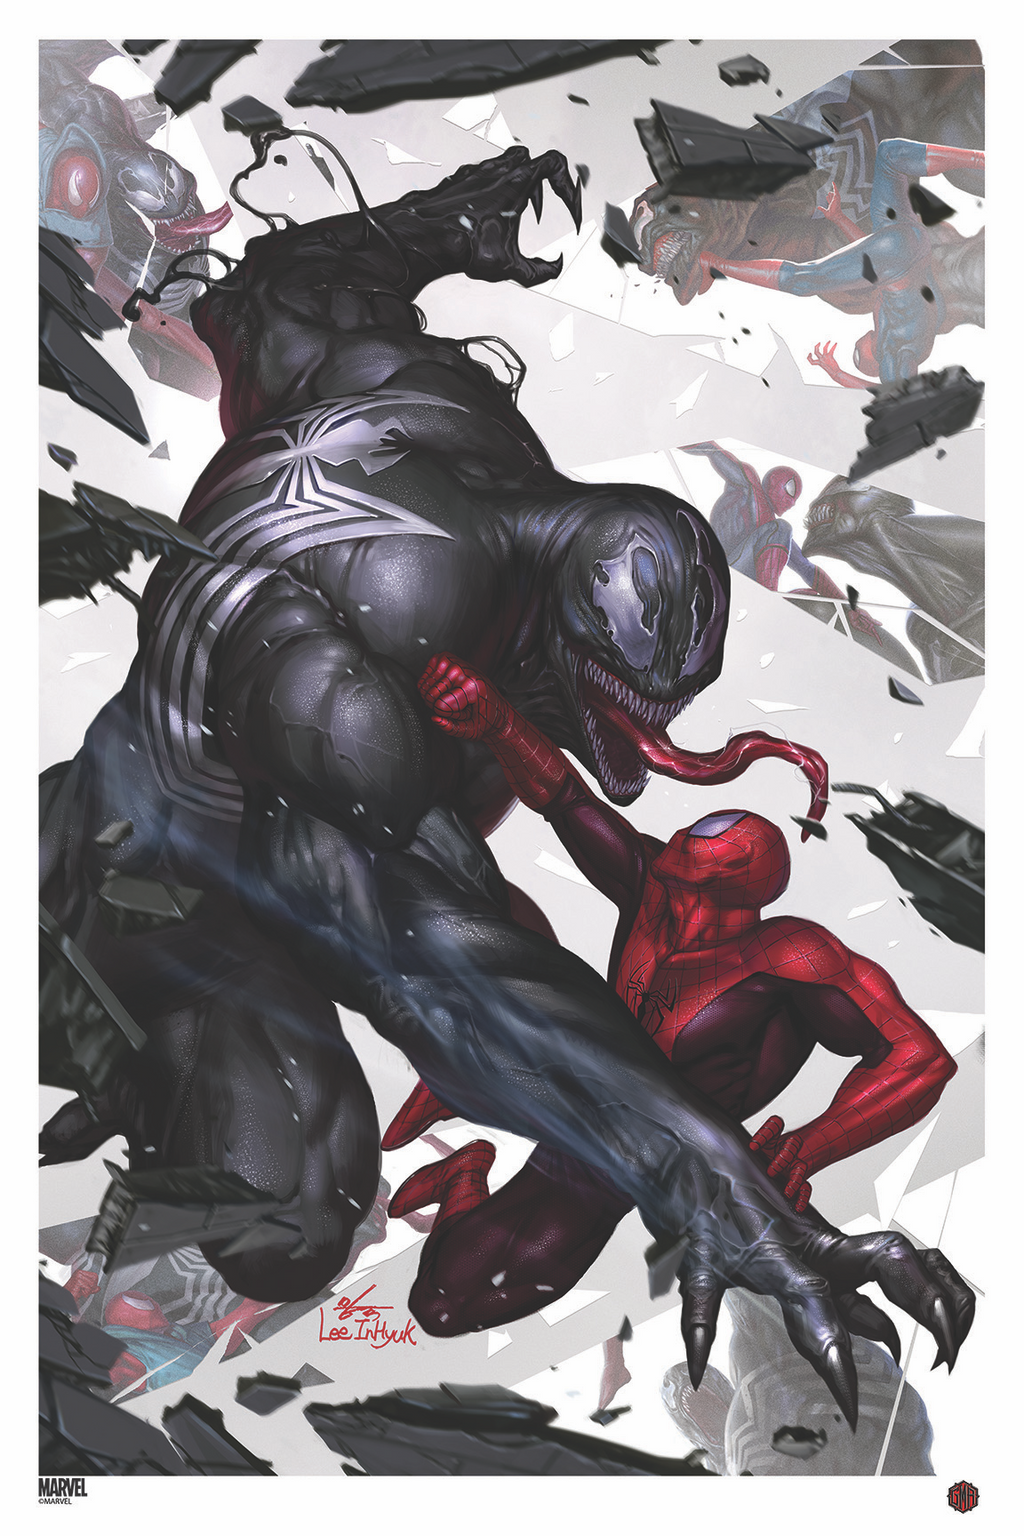 """Marvel Comics #1000"" (Variant) - Officially Licensed & Limited Edition - Marvel Comics Poster Art By InHyuk Lee"